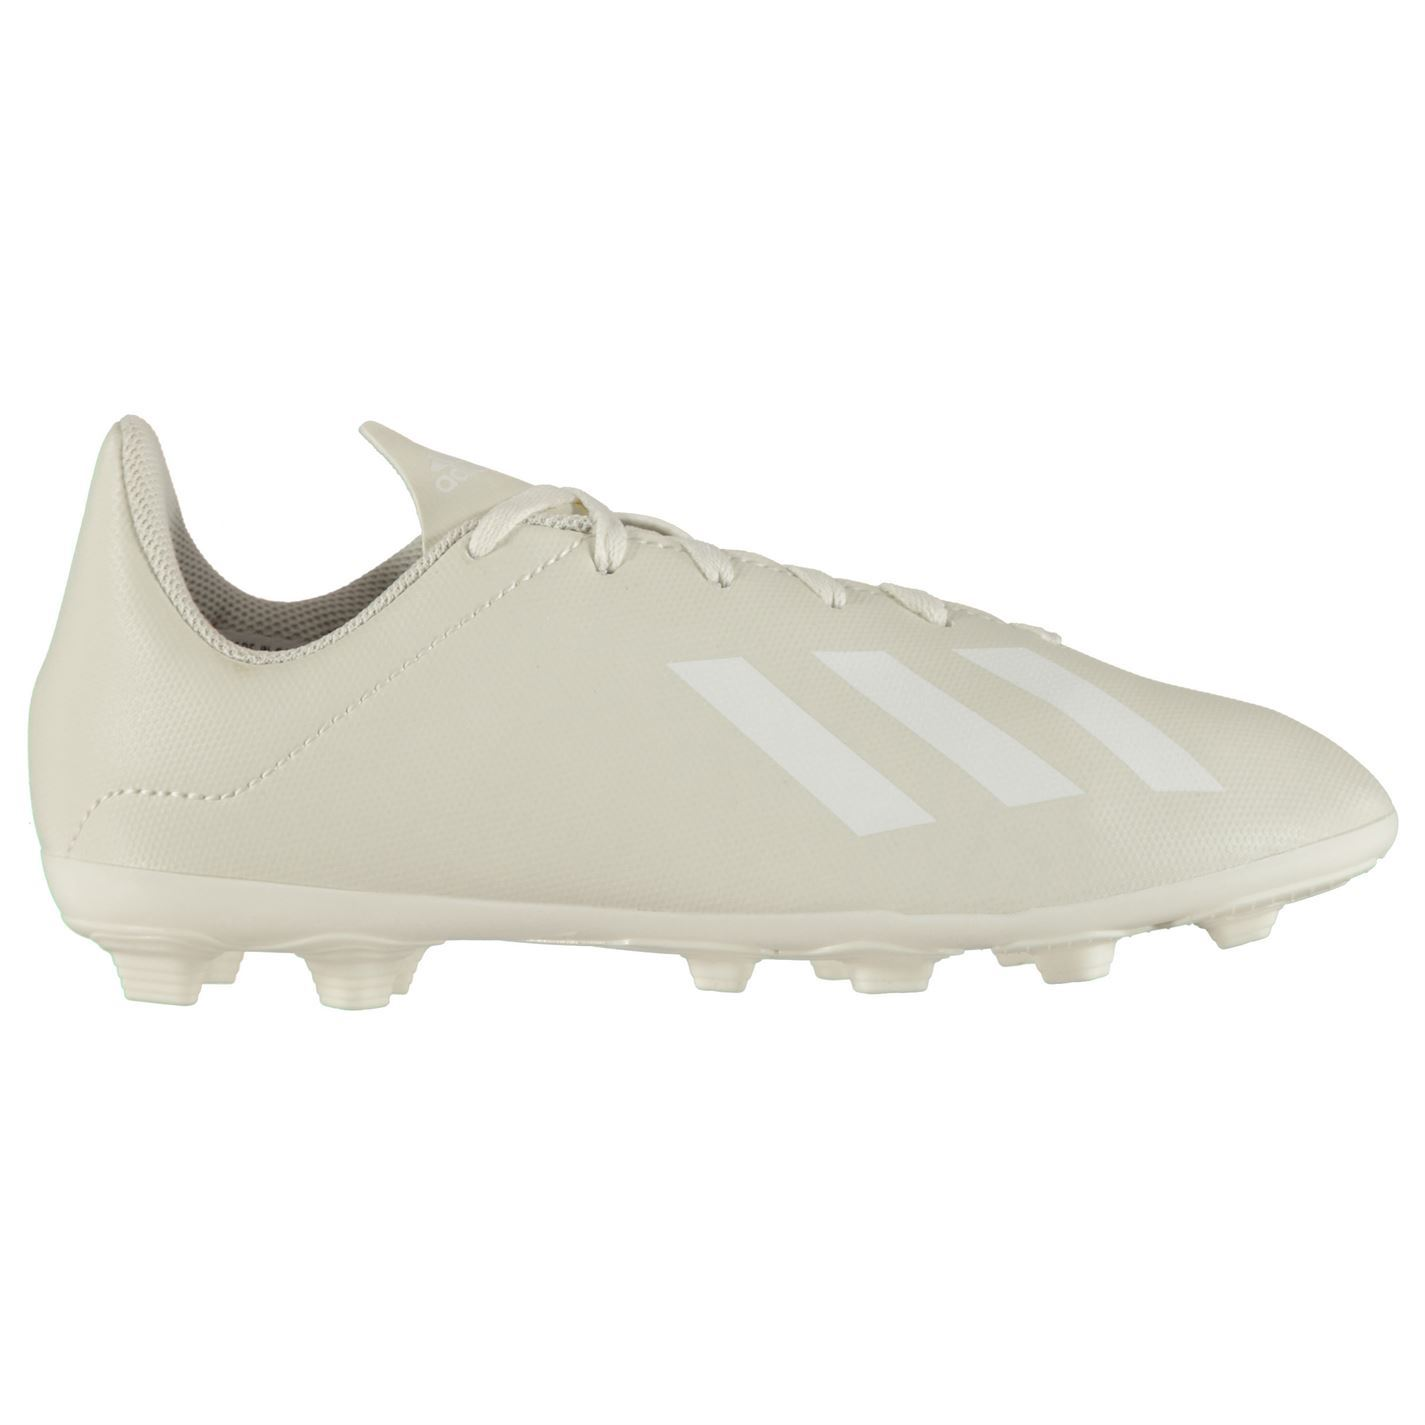 reputable site ab638 4eeef ... adidas X 18.4 FG Firm Ground Football Boots Childs Soccer Shoes Cleats